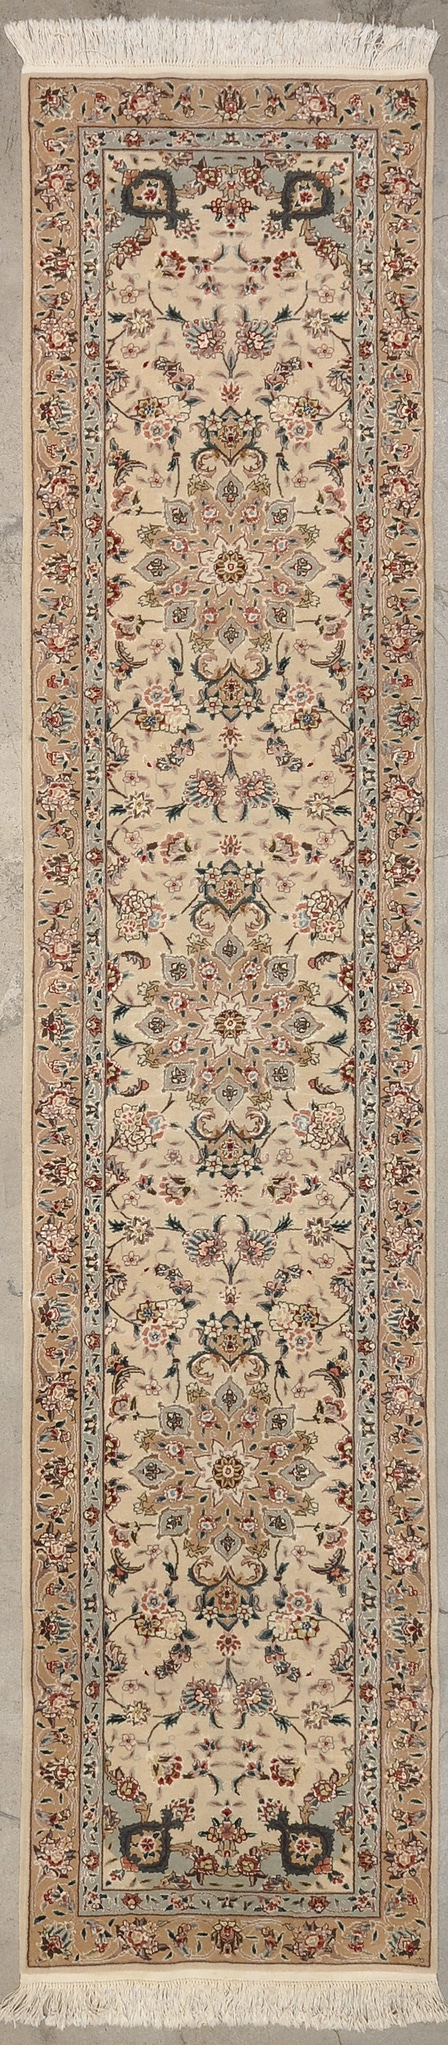 Sino Tabriz Runner rugs and more oriental carpet 33628-